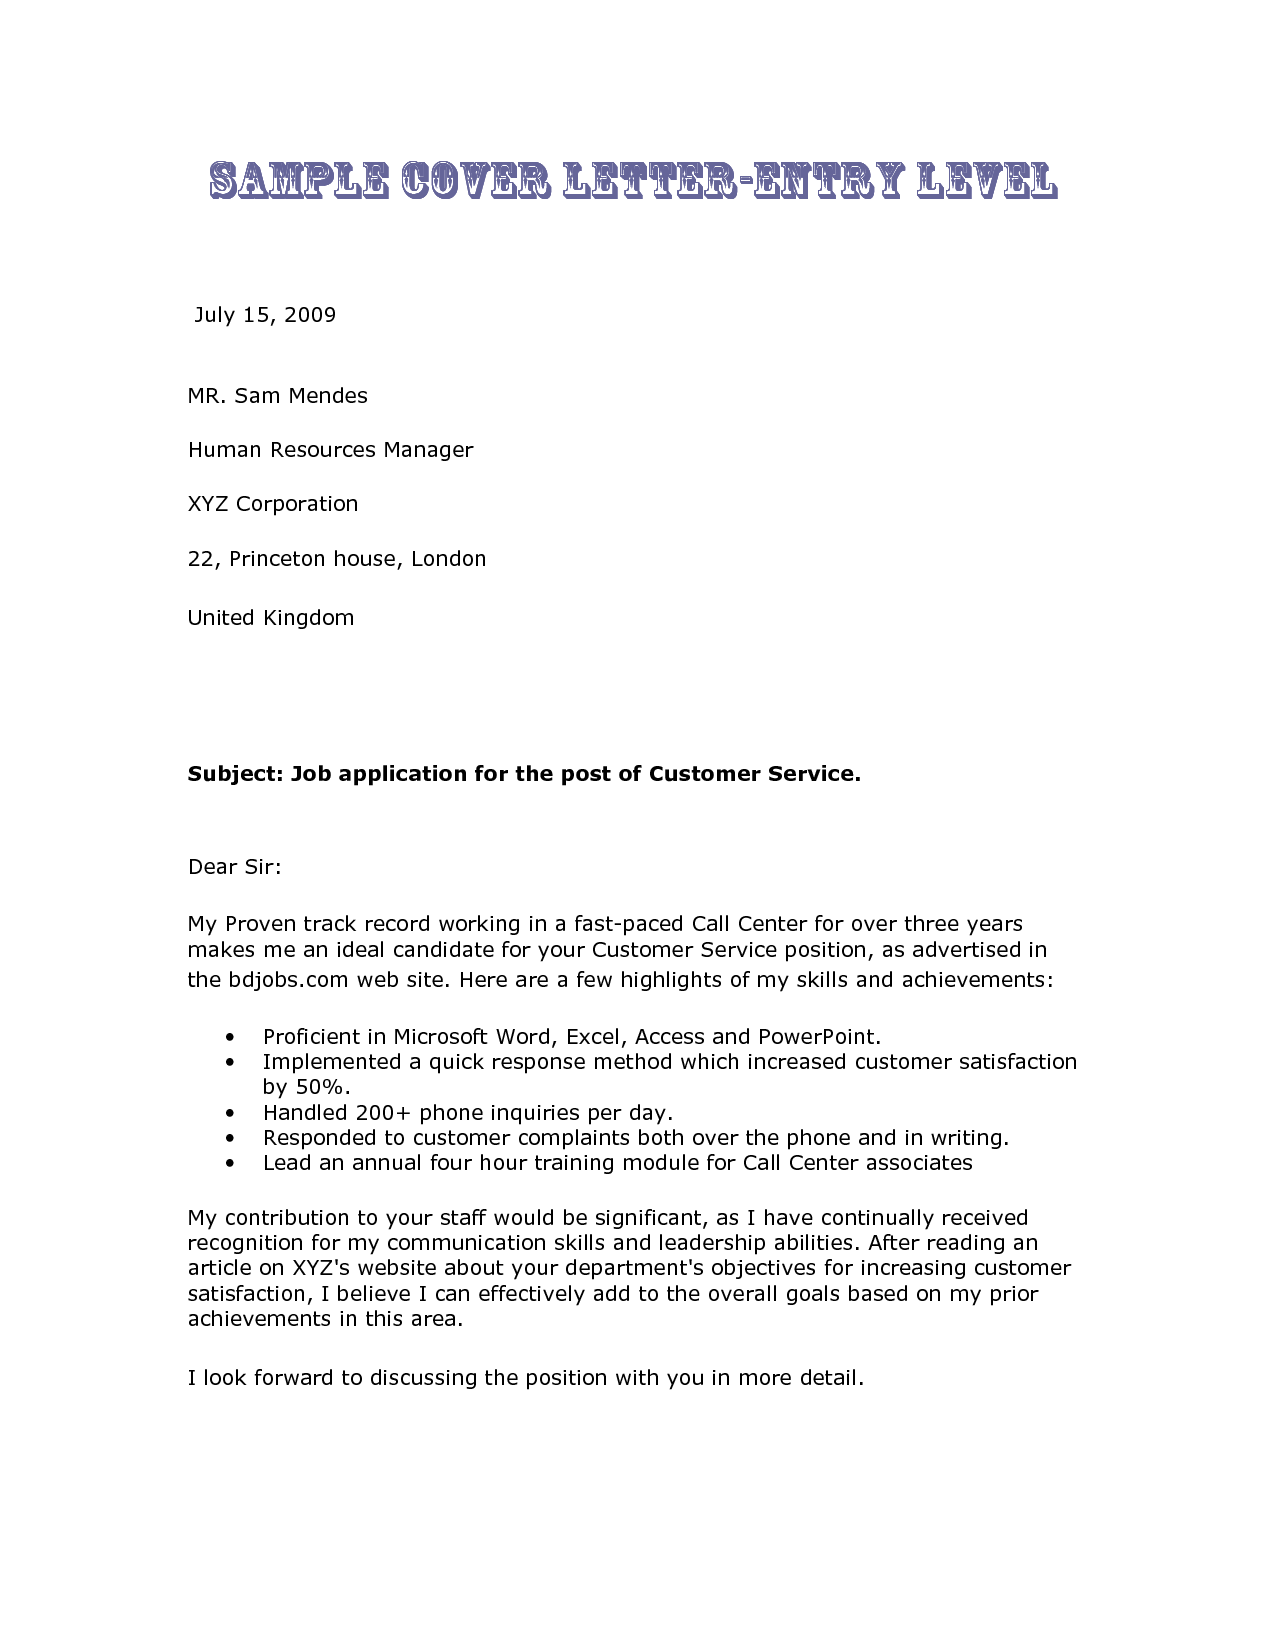 General Cover Letter For Resume Entry Level Cover Letter Examples  Httpwwwresumecareer